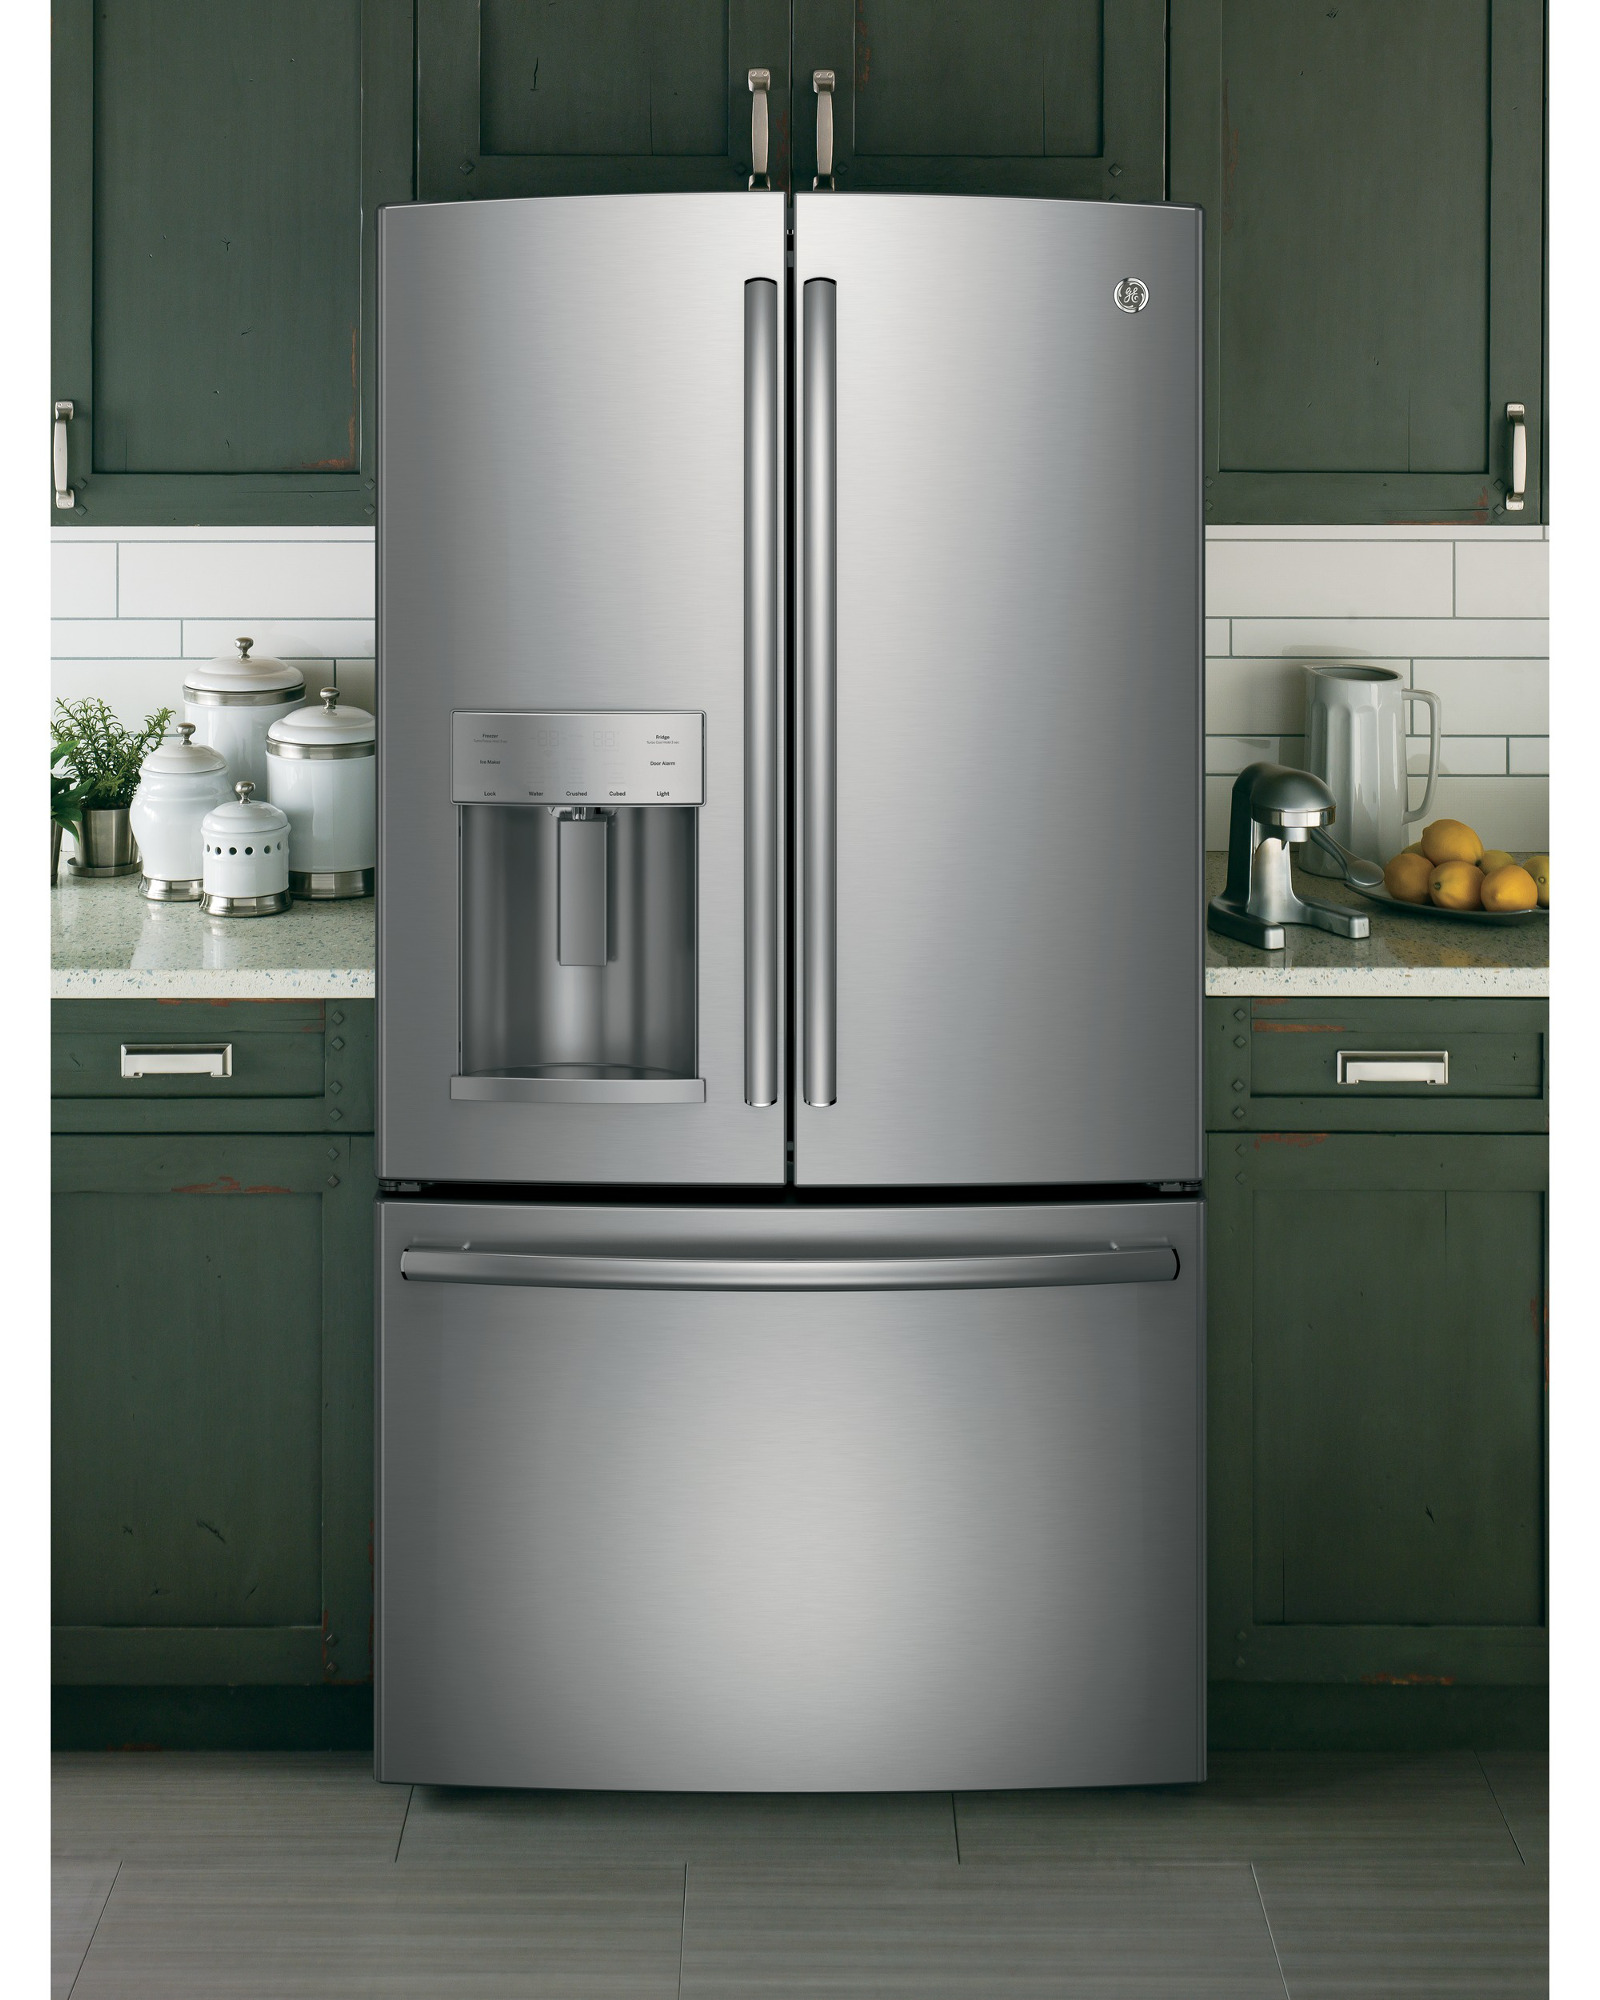 GE Appliances GFE26GSHSS 25.7 cu. ft. French-Door Ice and Water Refrigerator - Stainless Steel